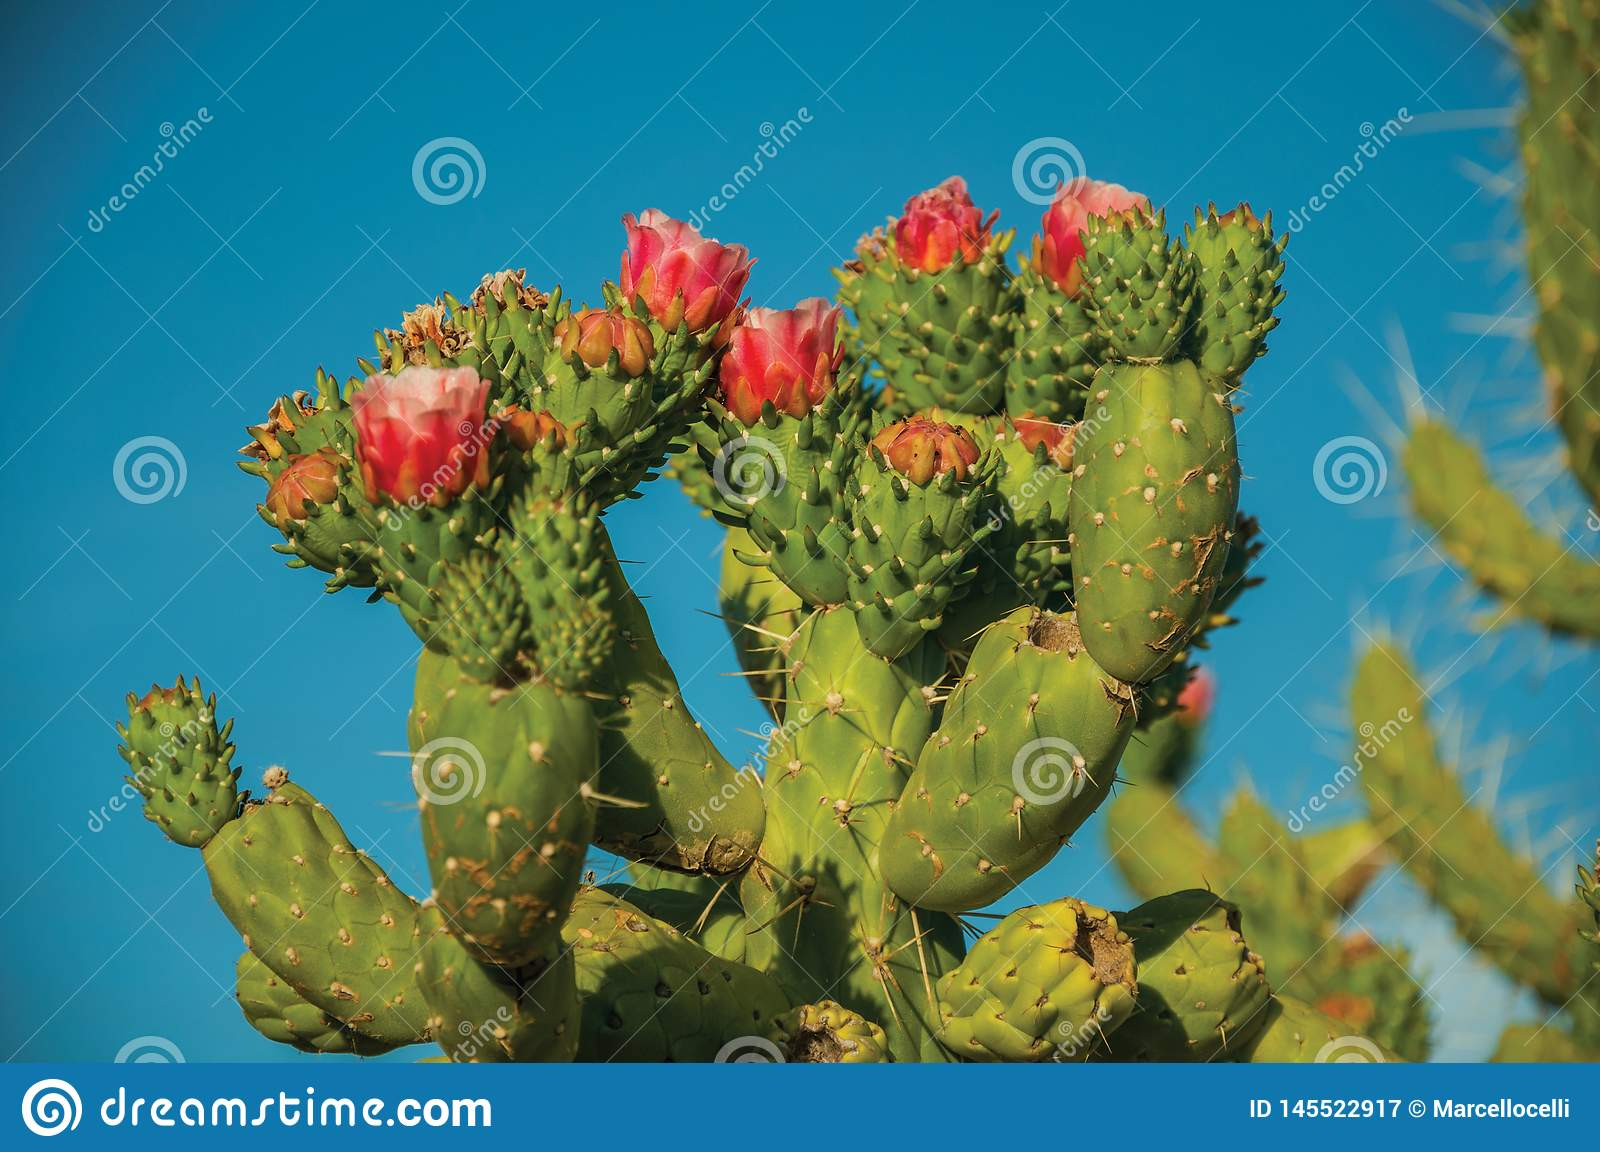 Green cactus bush with colorful flowers